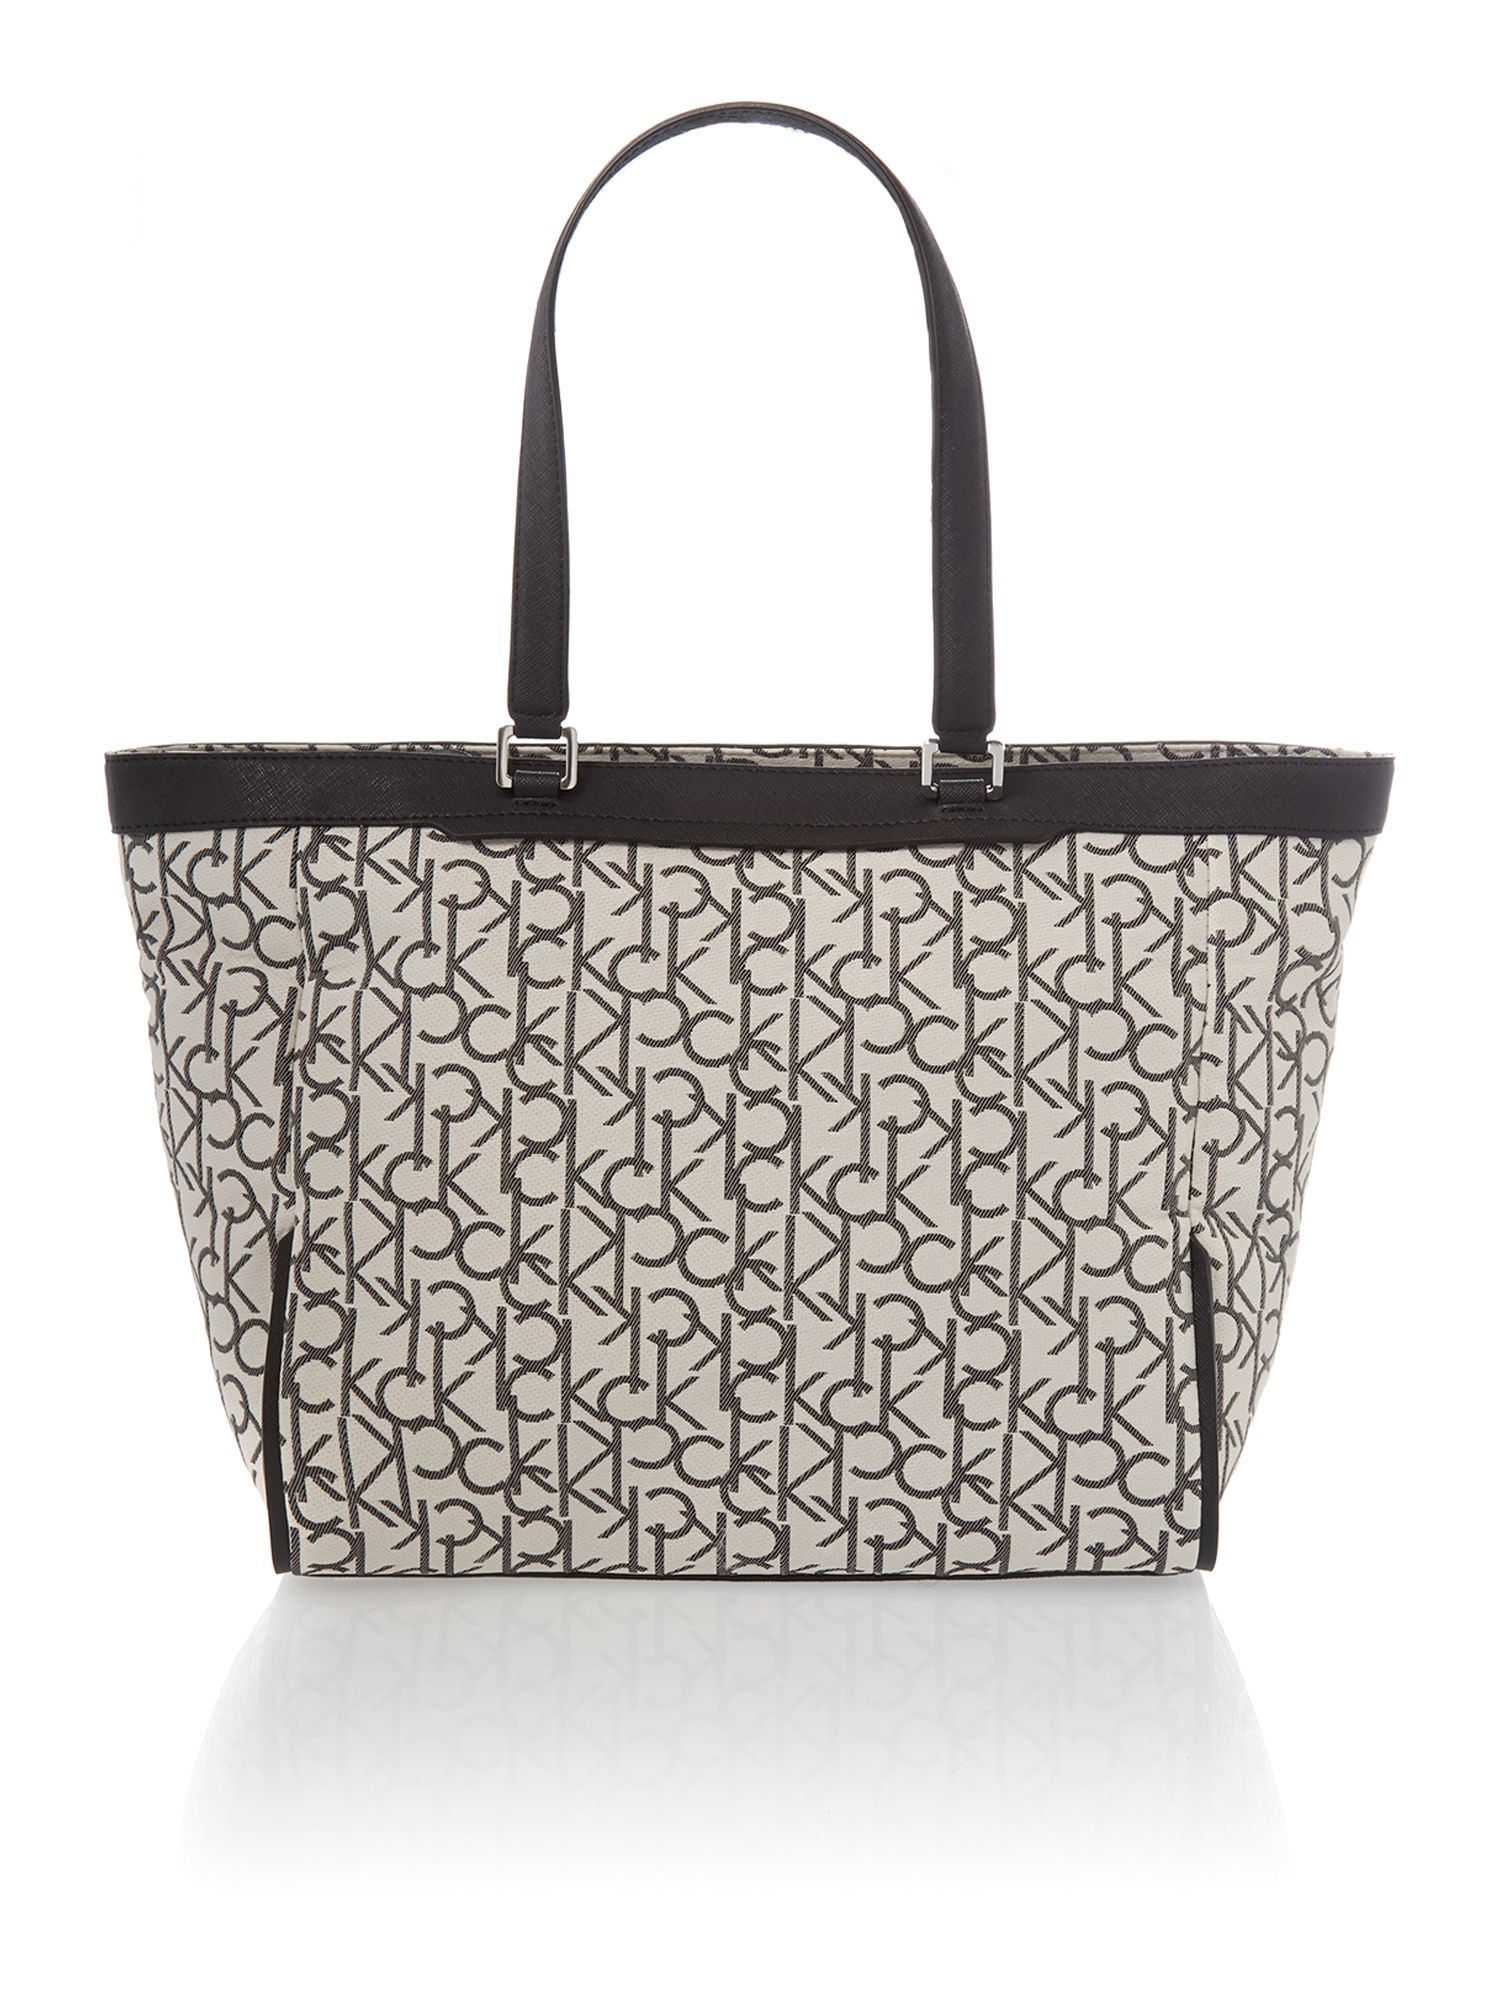 Jaquard neutral tote bag